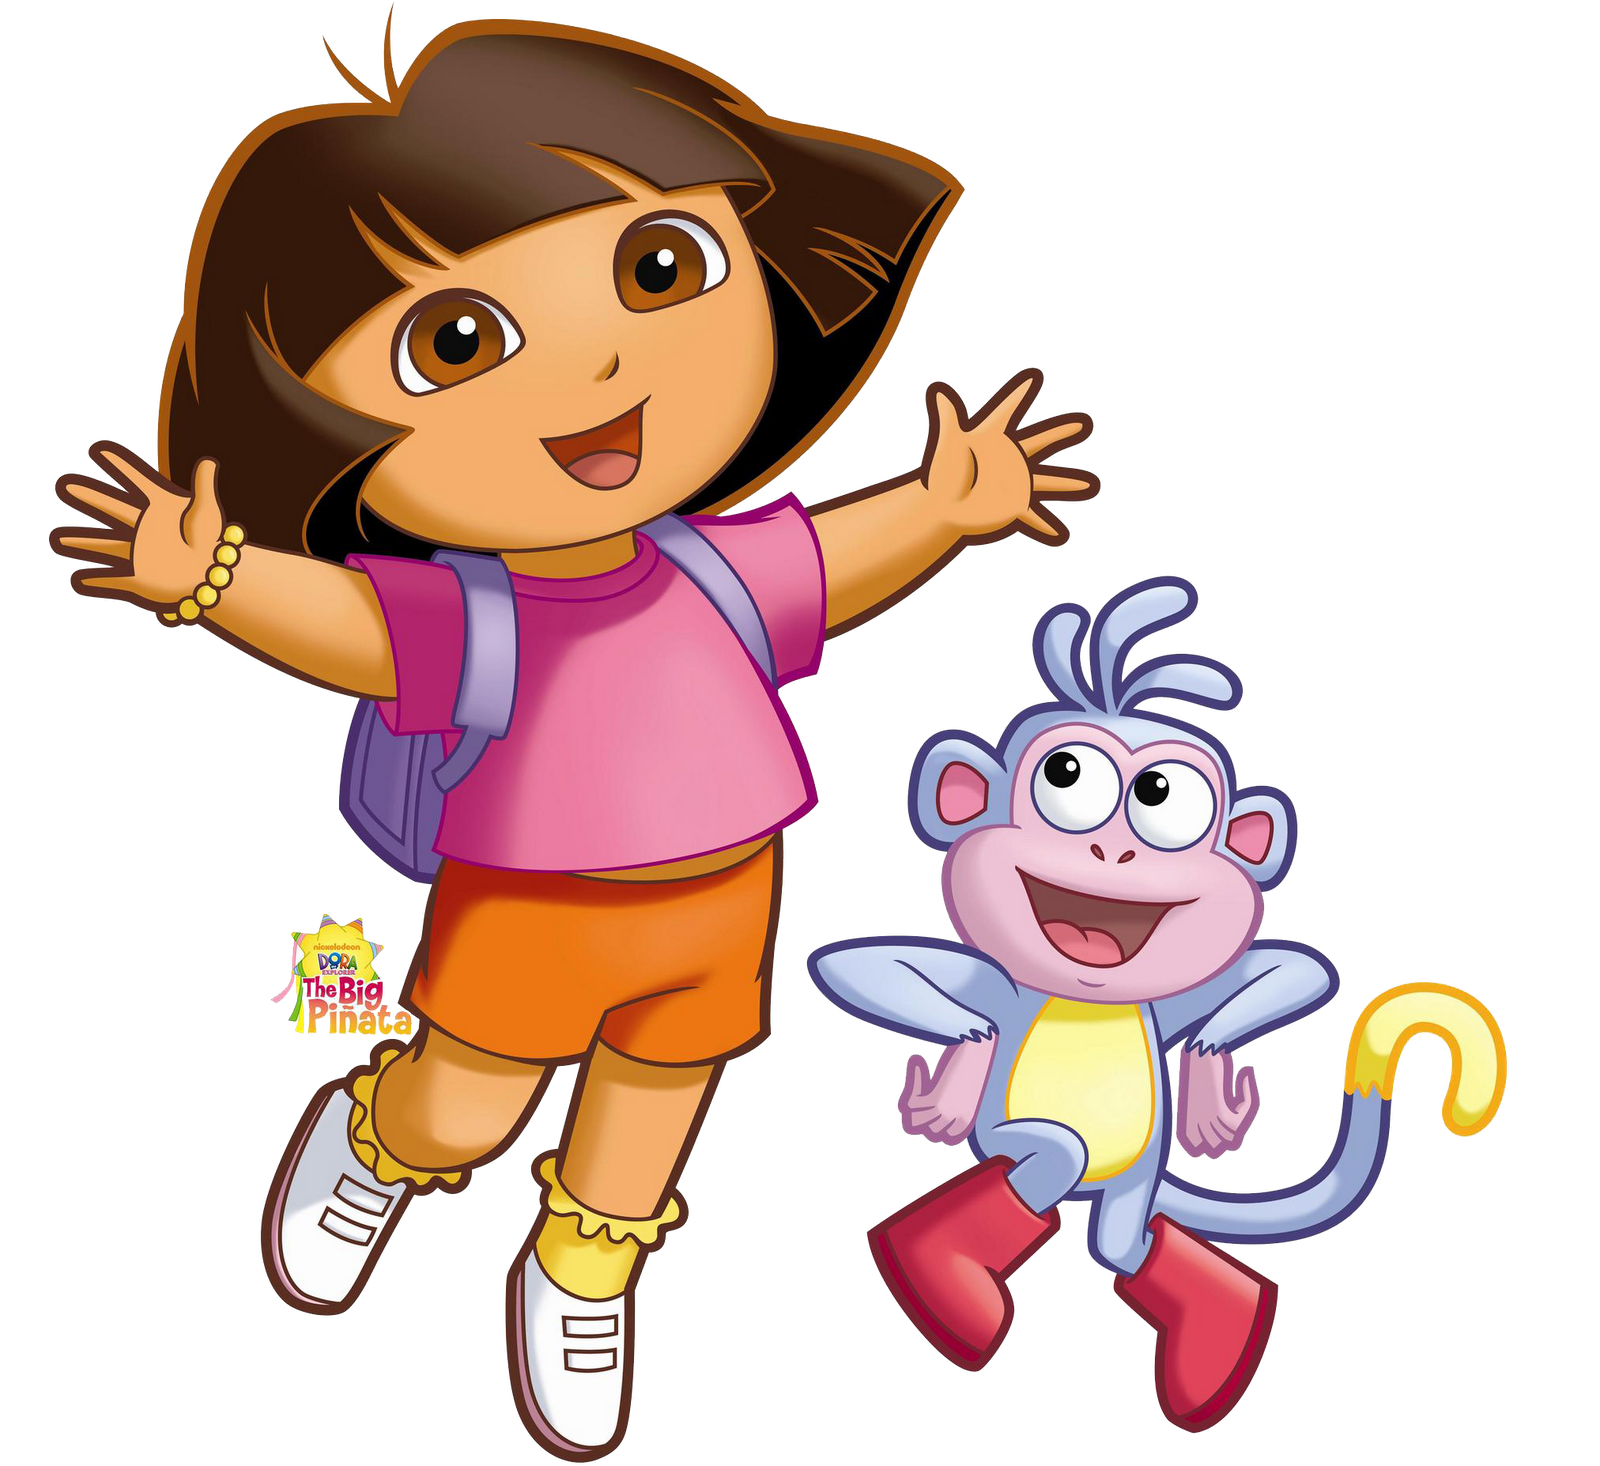 Dora+y+botas.png (1600×1466) | Places to Visit | Pinterest | Dora la ...